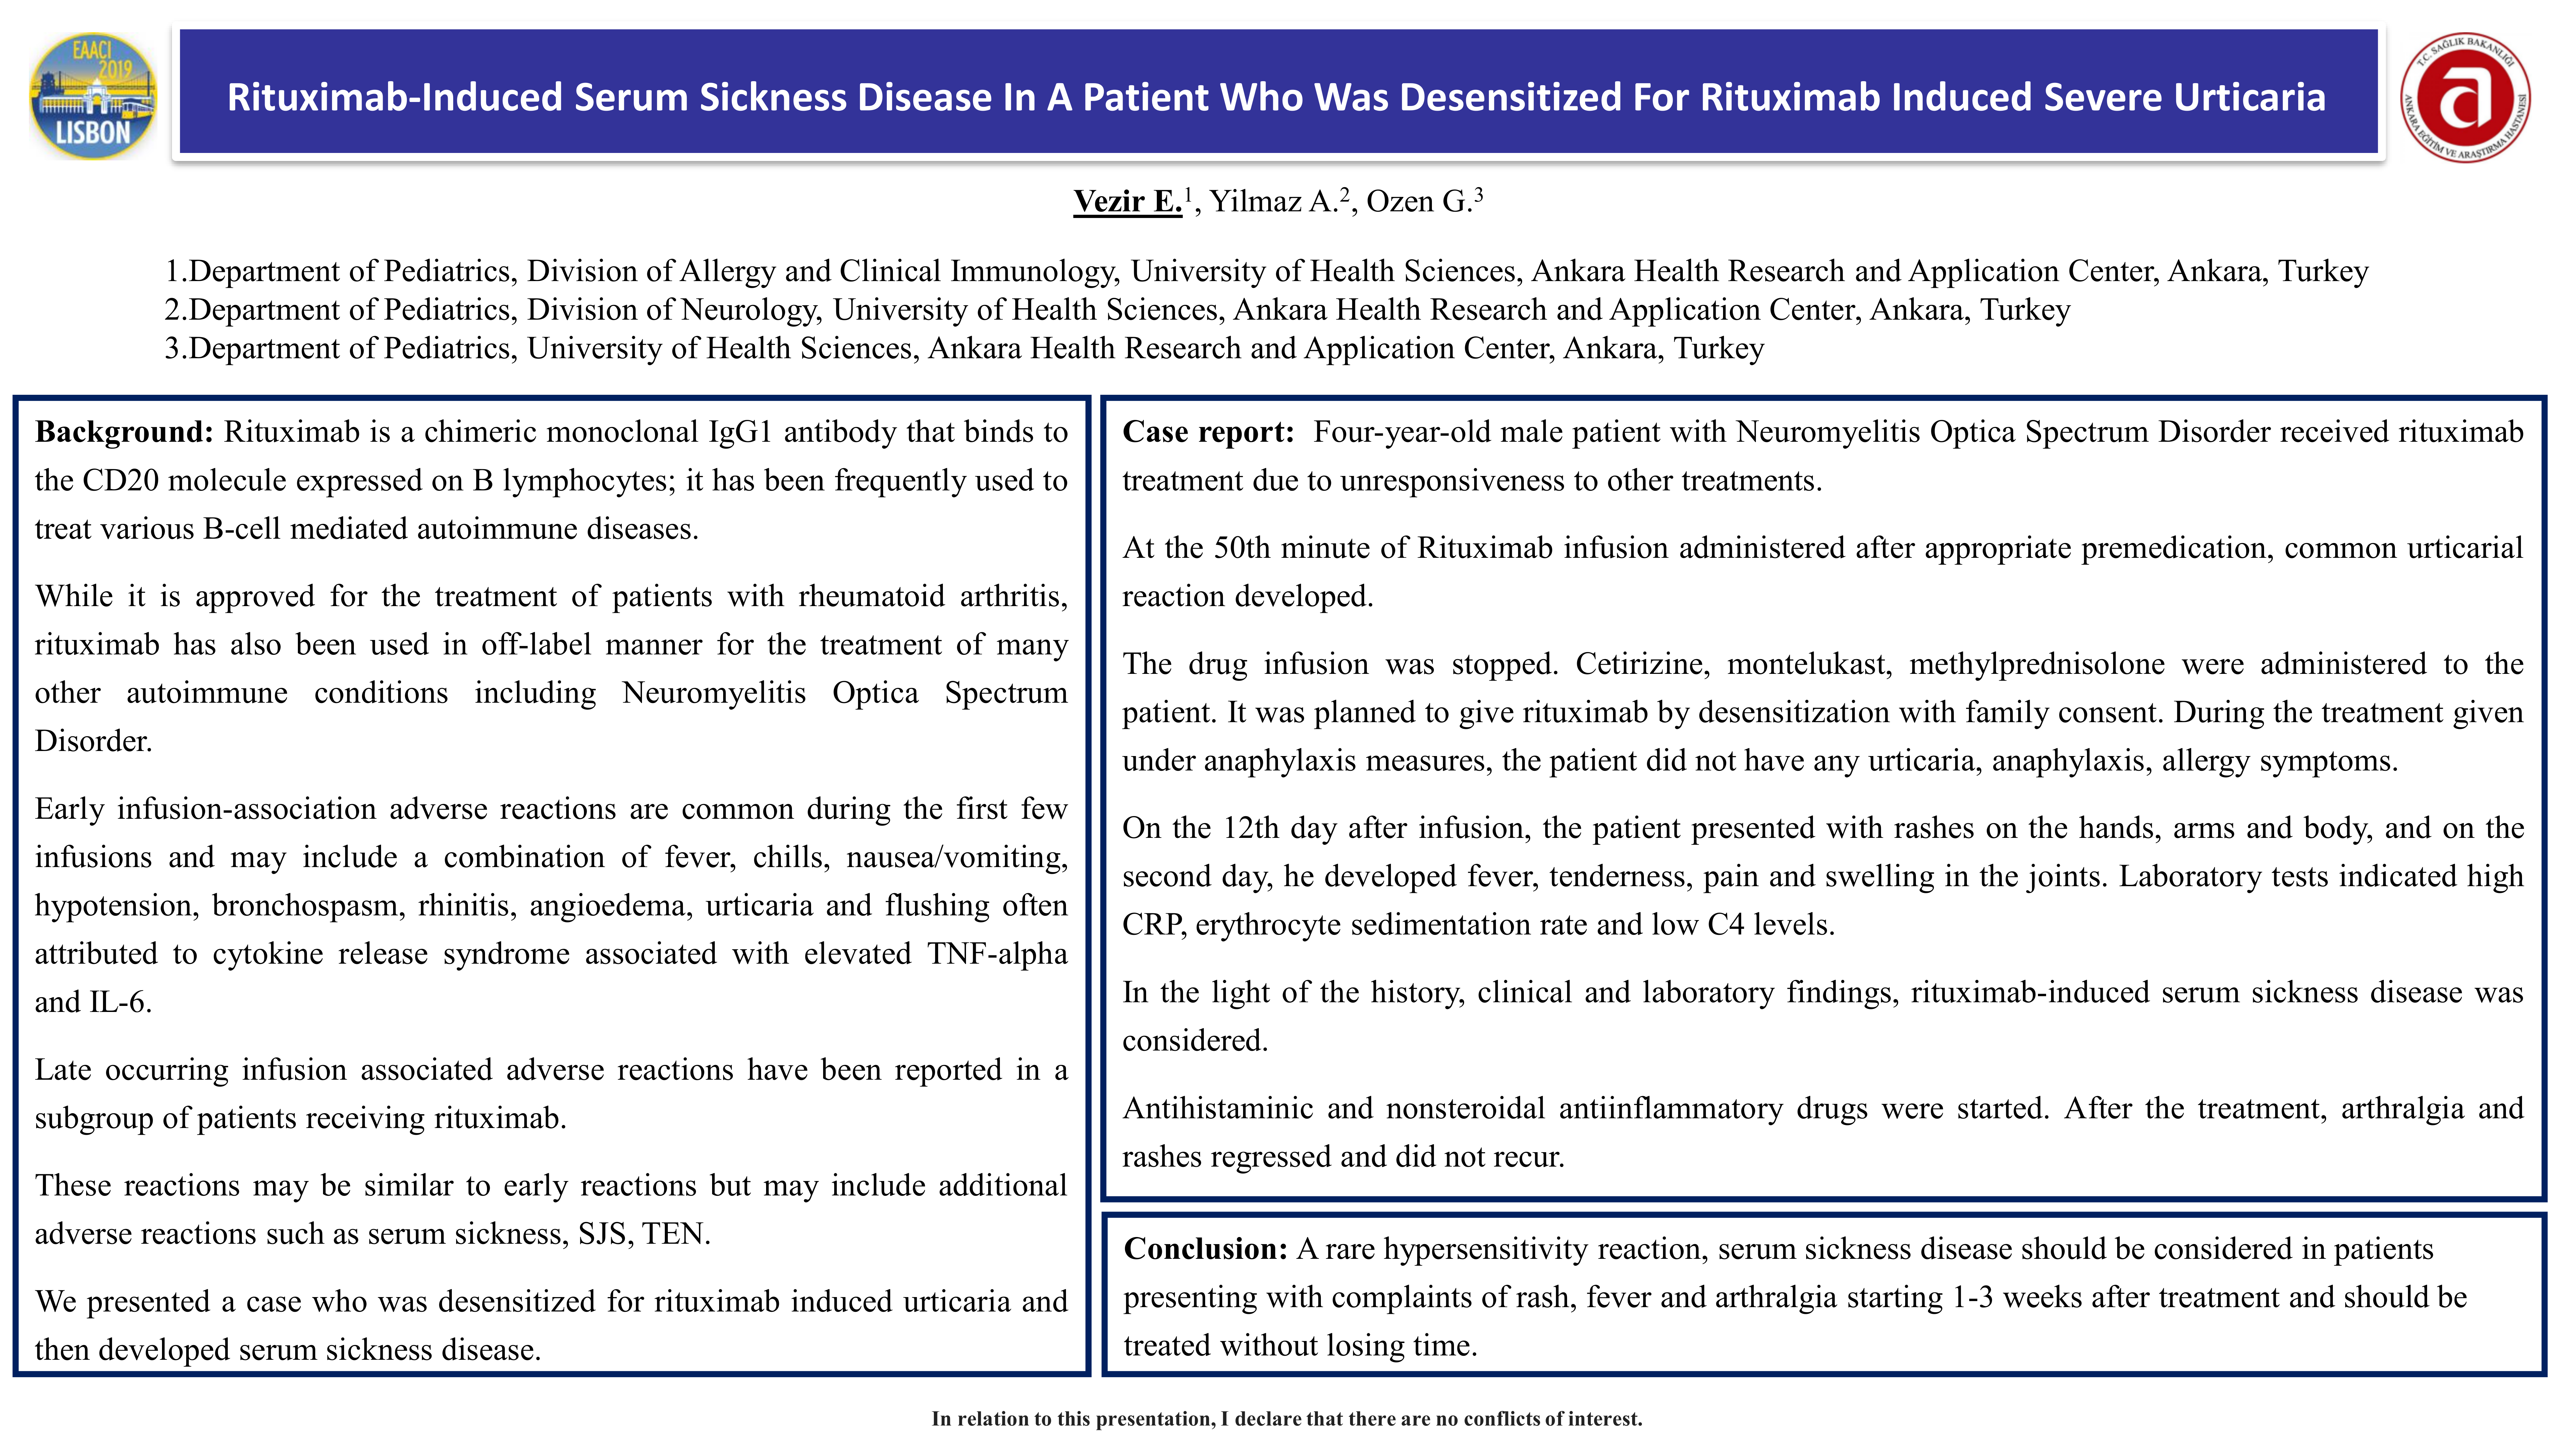 TP1430 - Rituximab-induced serum sickness disease in a